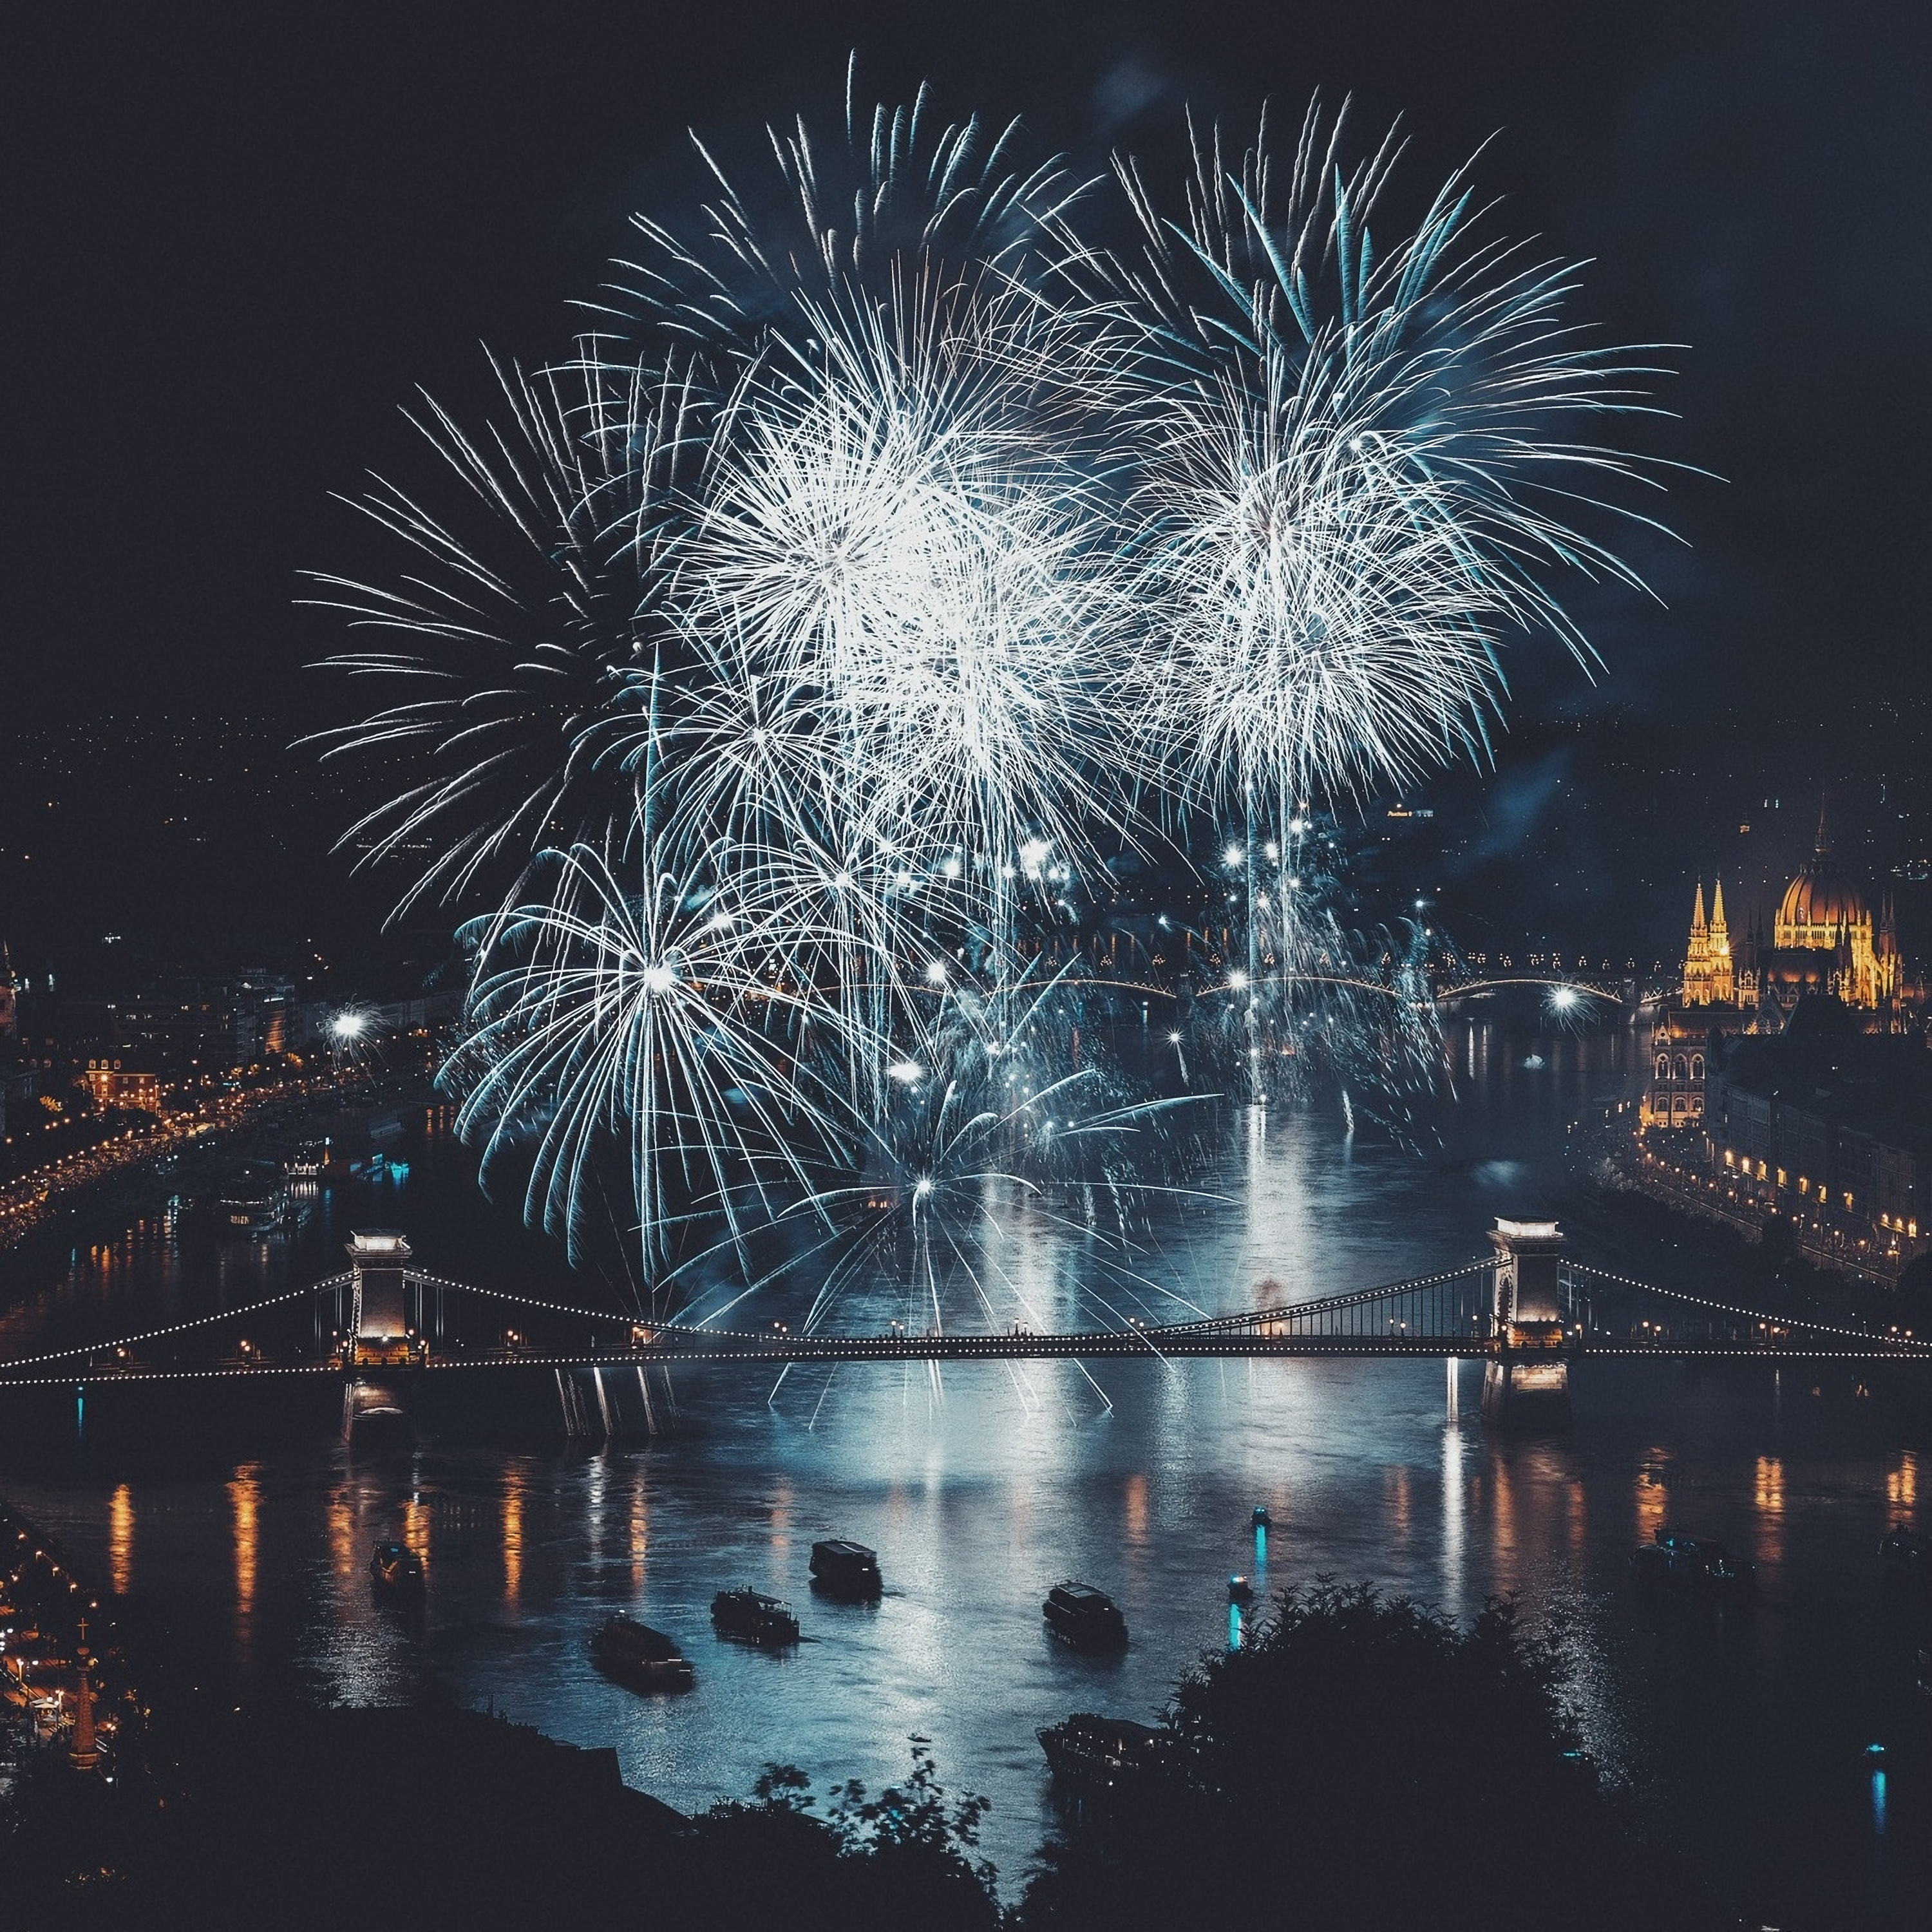 112974 download wallpaper Holidays, Rivers, Night, Salute, City, Bridge screensavers and pictures for free